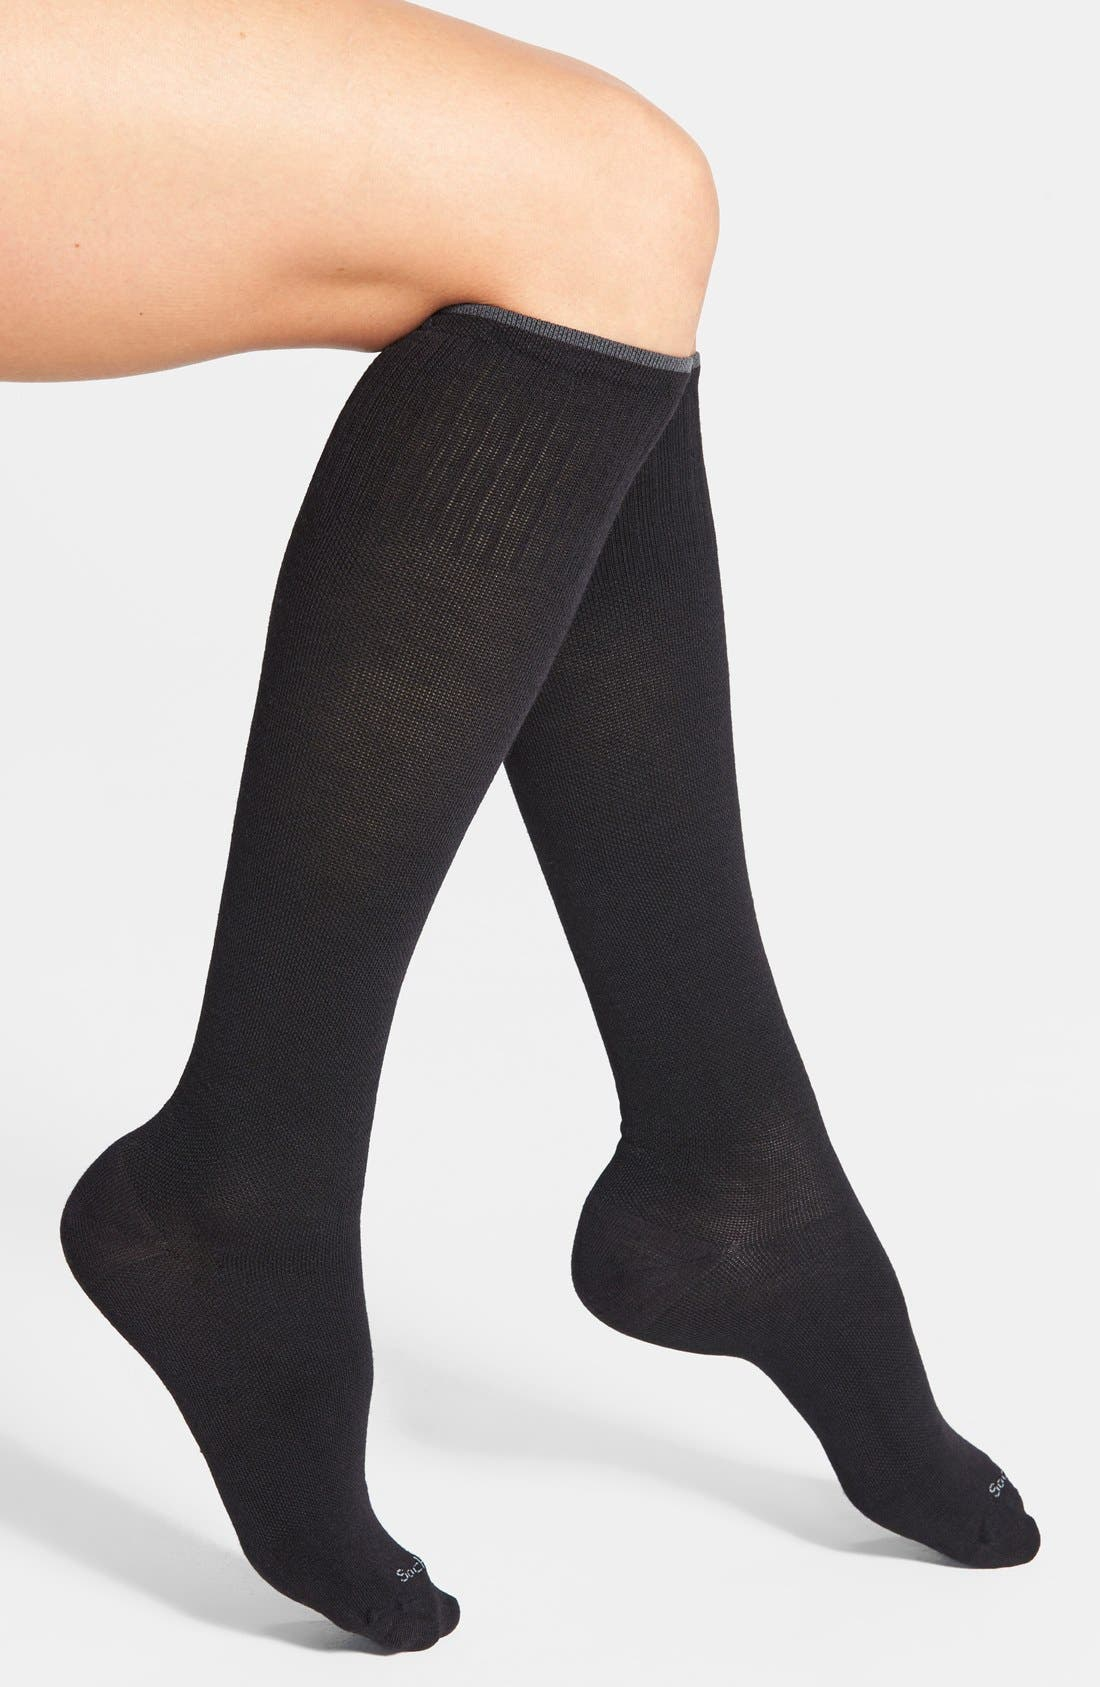 'Goodhew - On the Spot' Compression Knee Socks,                             Main thumbnail 1, color,                             Black Solid